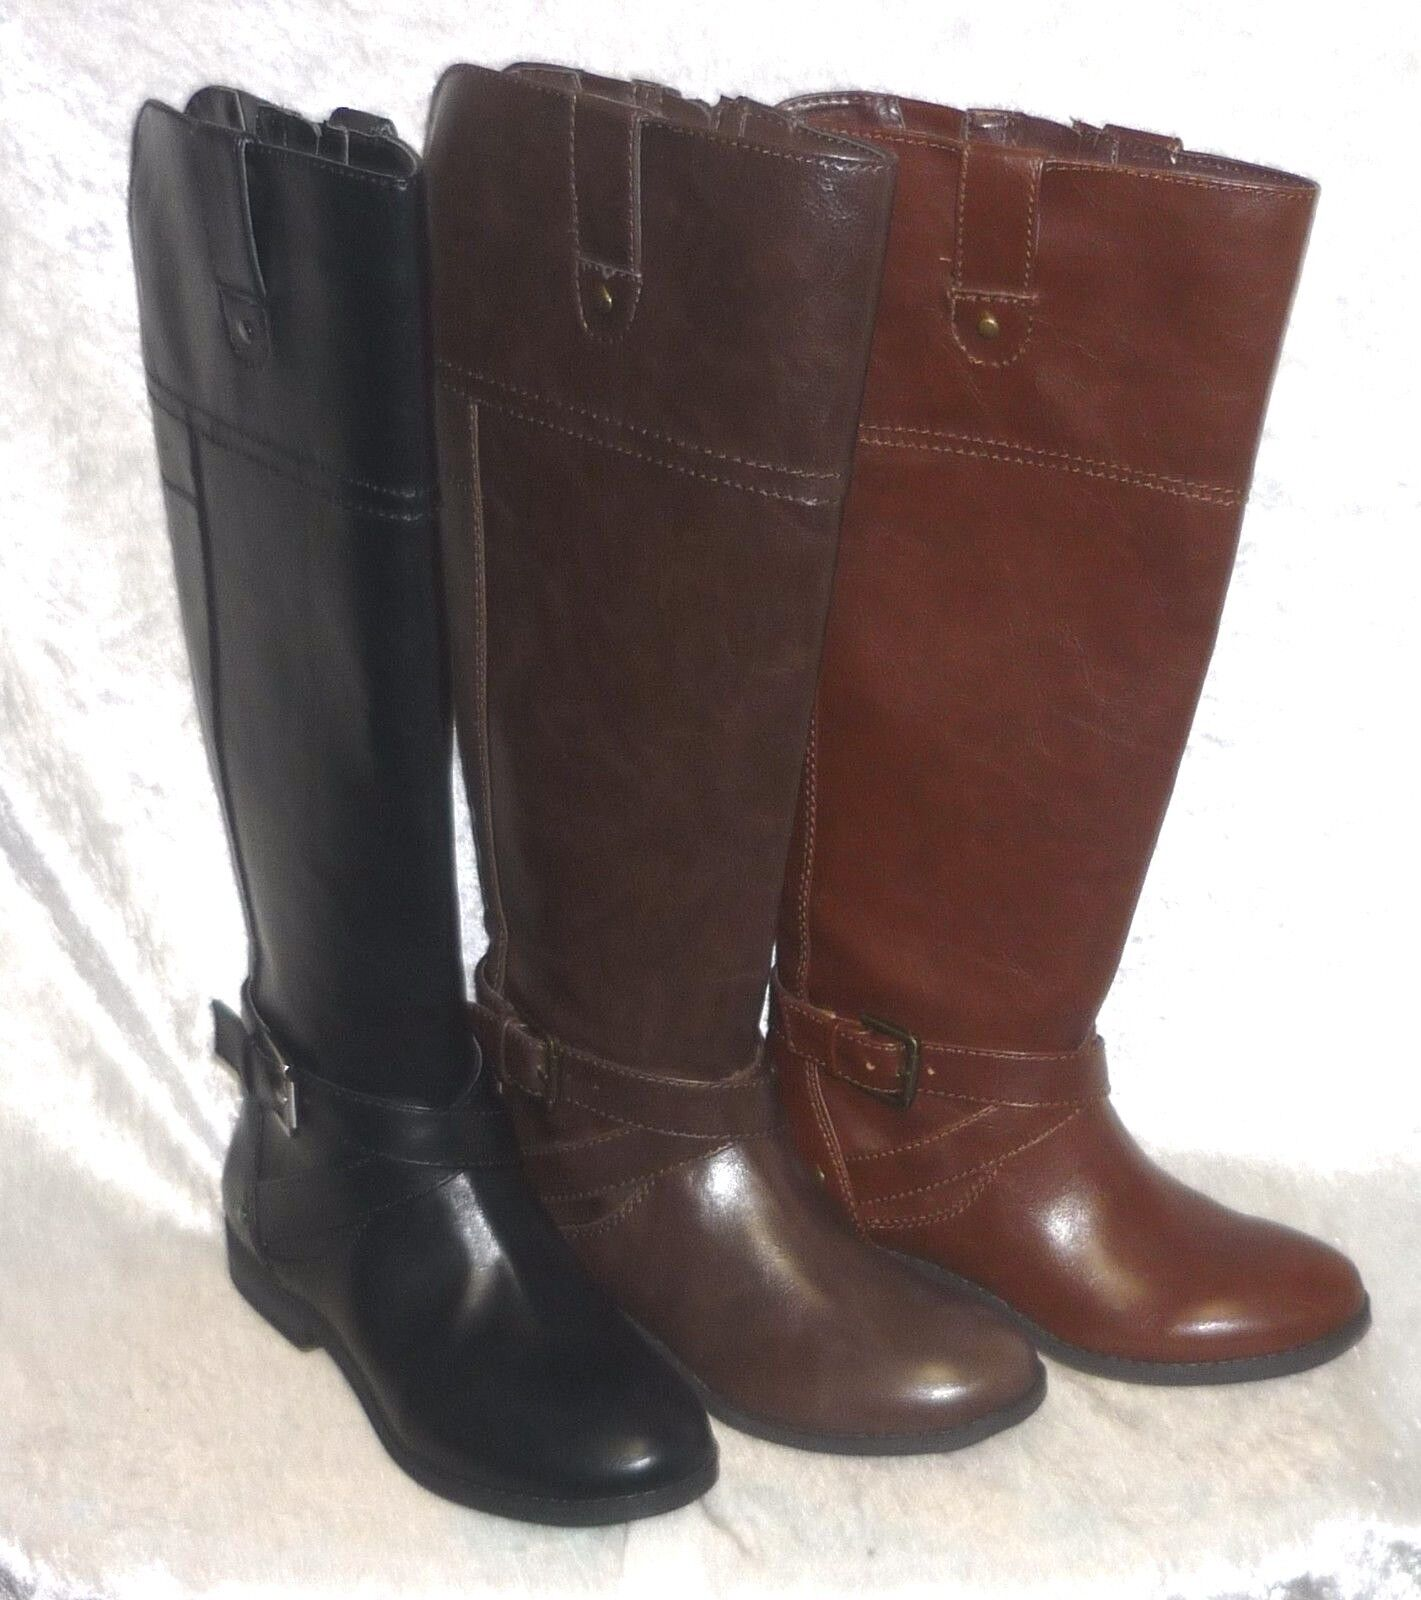 Liz Claiborne Womens Boots Amberly Man Made Solid size 5 5.5 6 6.5 7 NEW